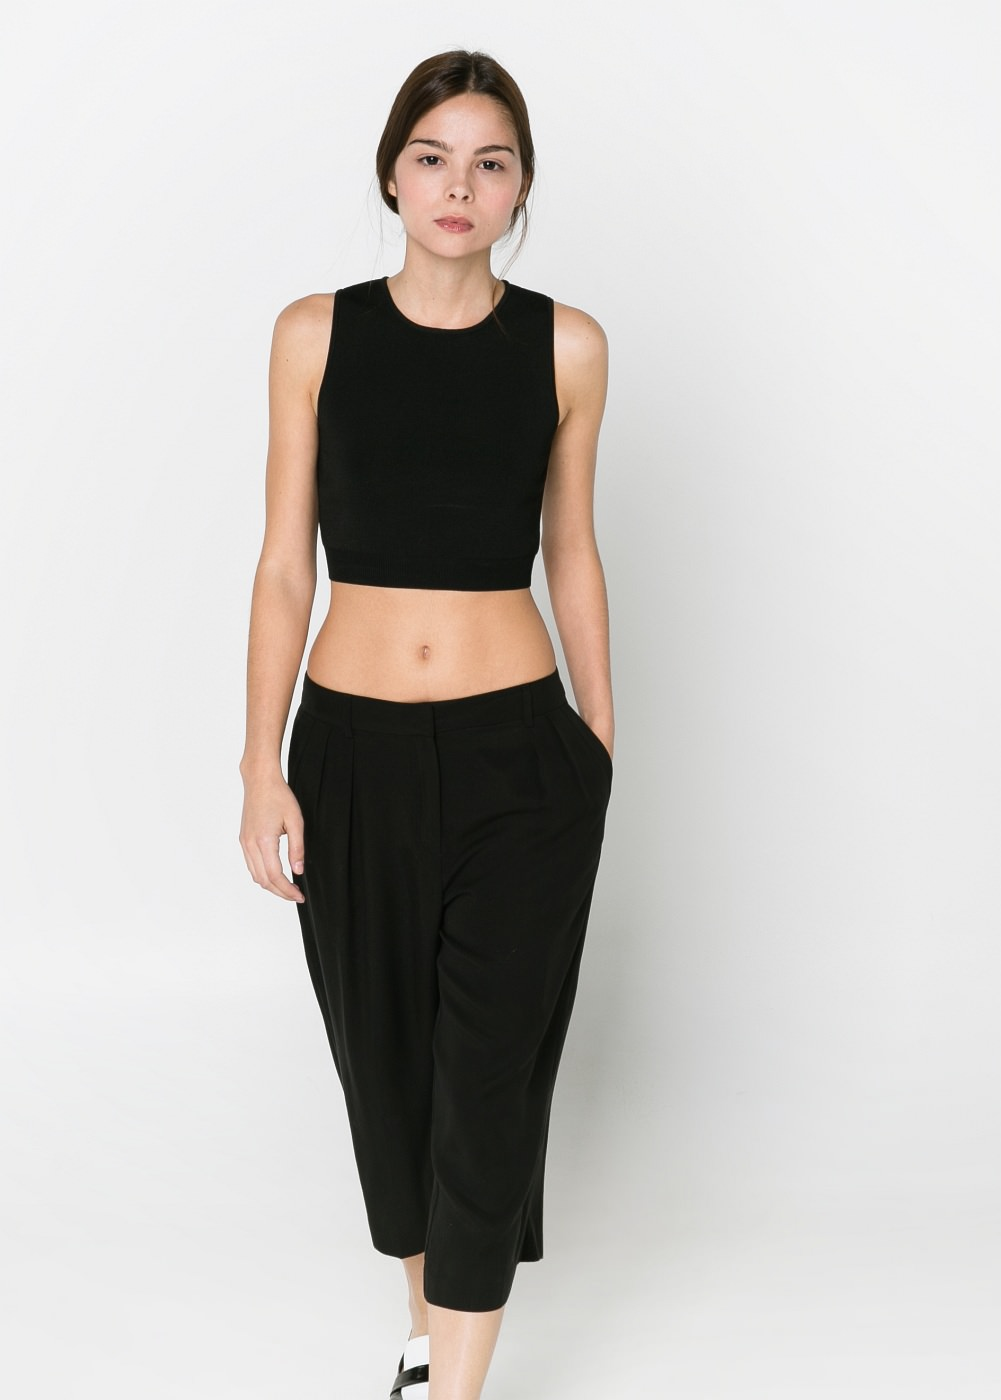 Cropped top -  T-shirts and tops - Women - MANGO